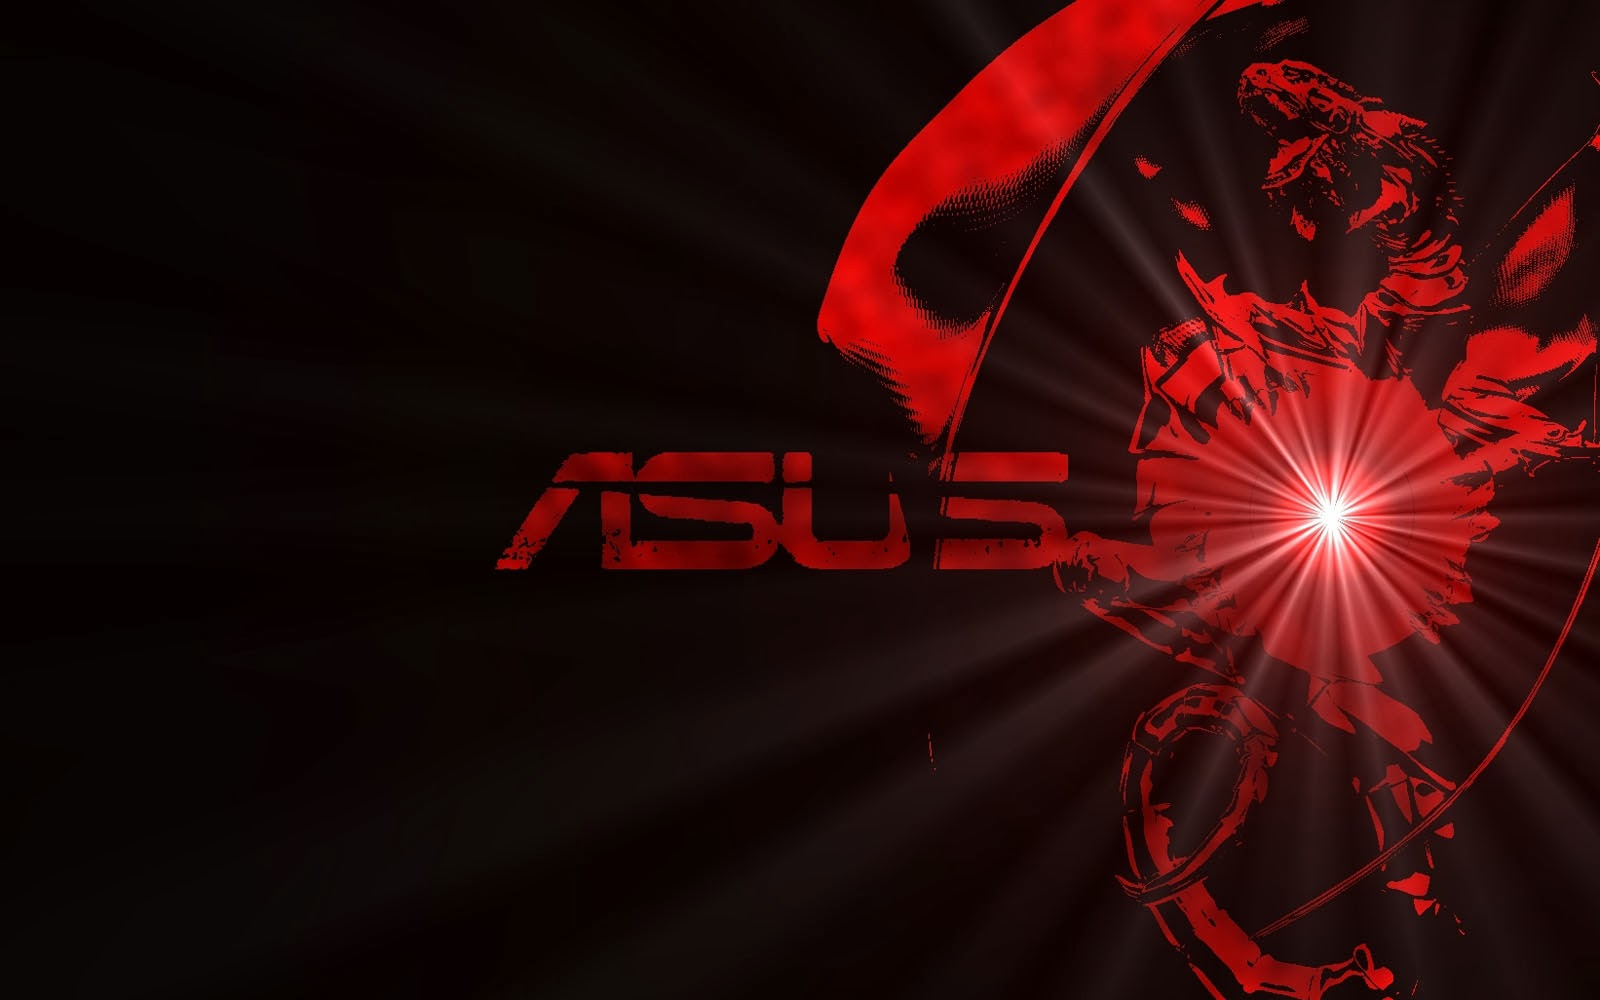 Asus HD Wallpapers for iPhone